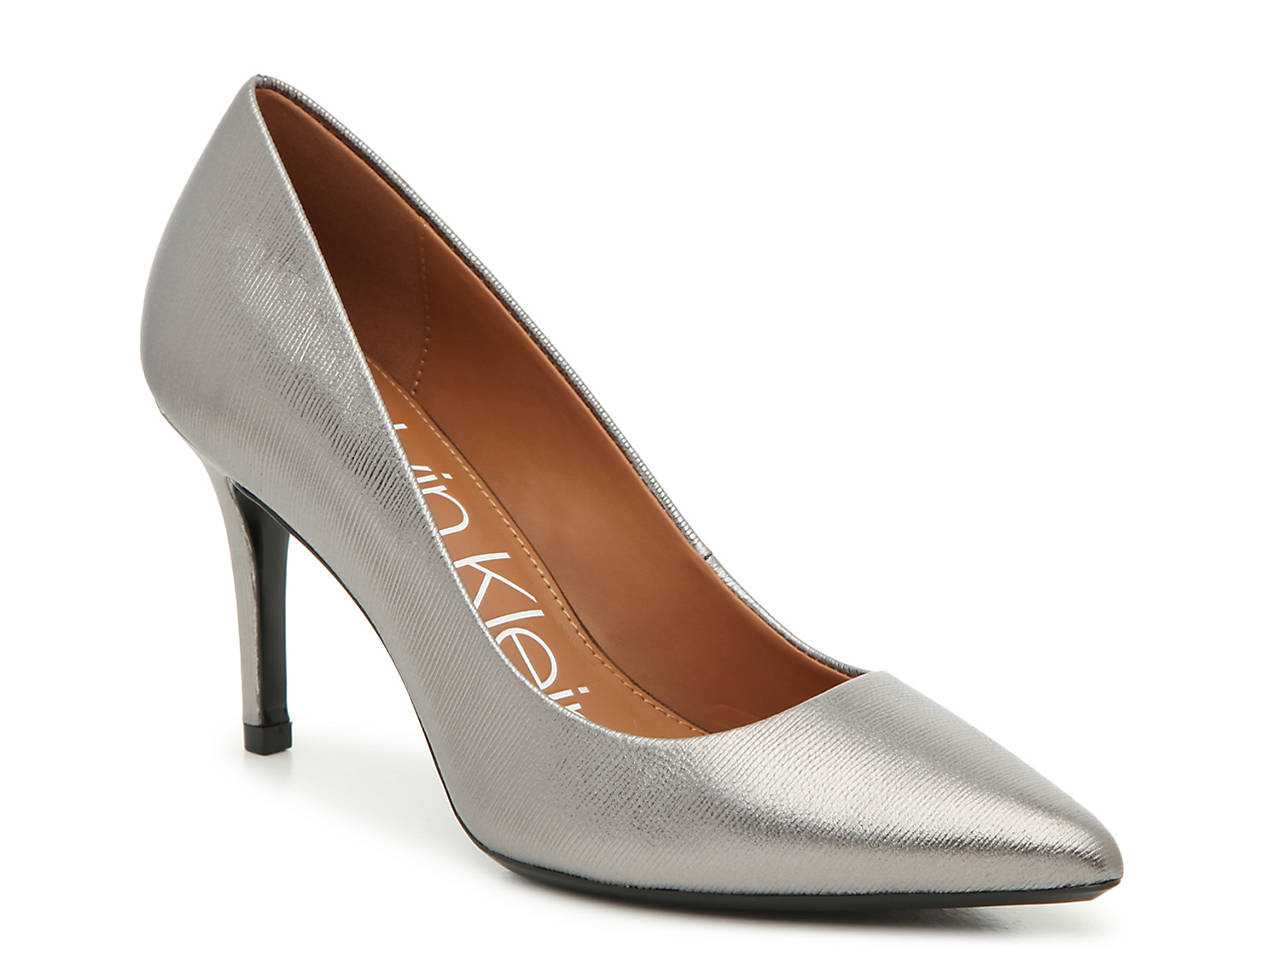 d95096c8a6a0 Calvin Klein Gayle Pump Women s Shoes